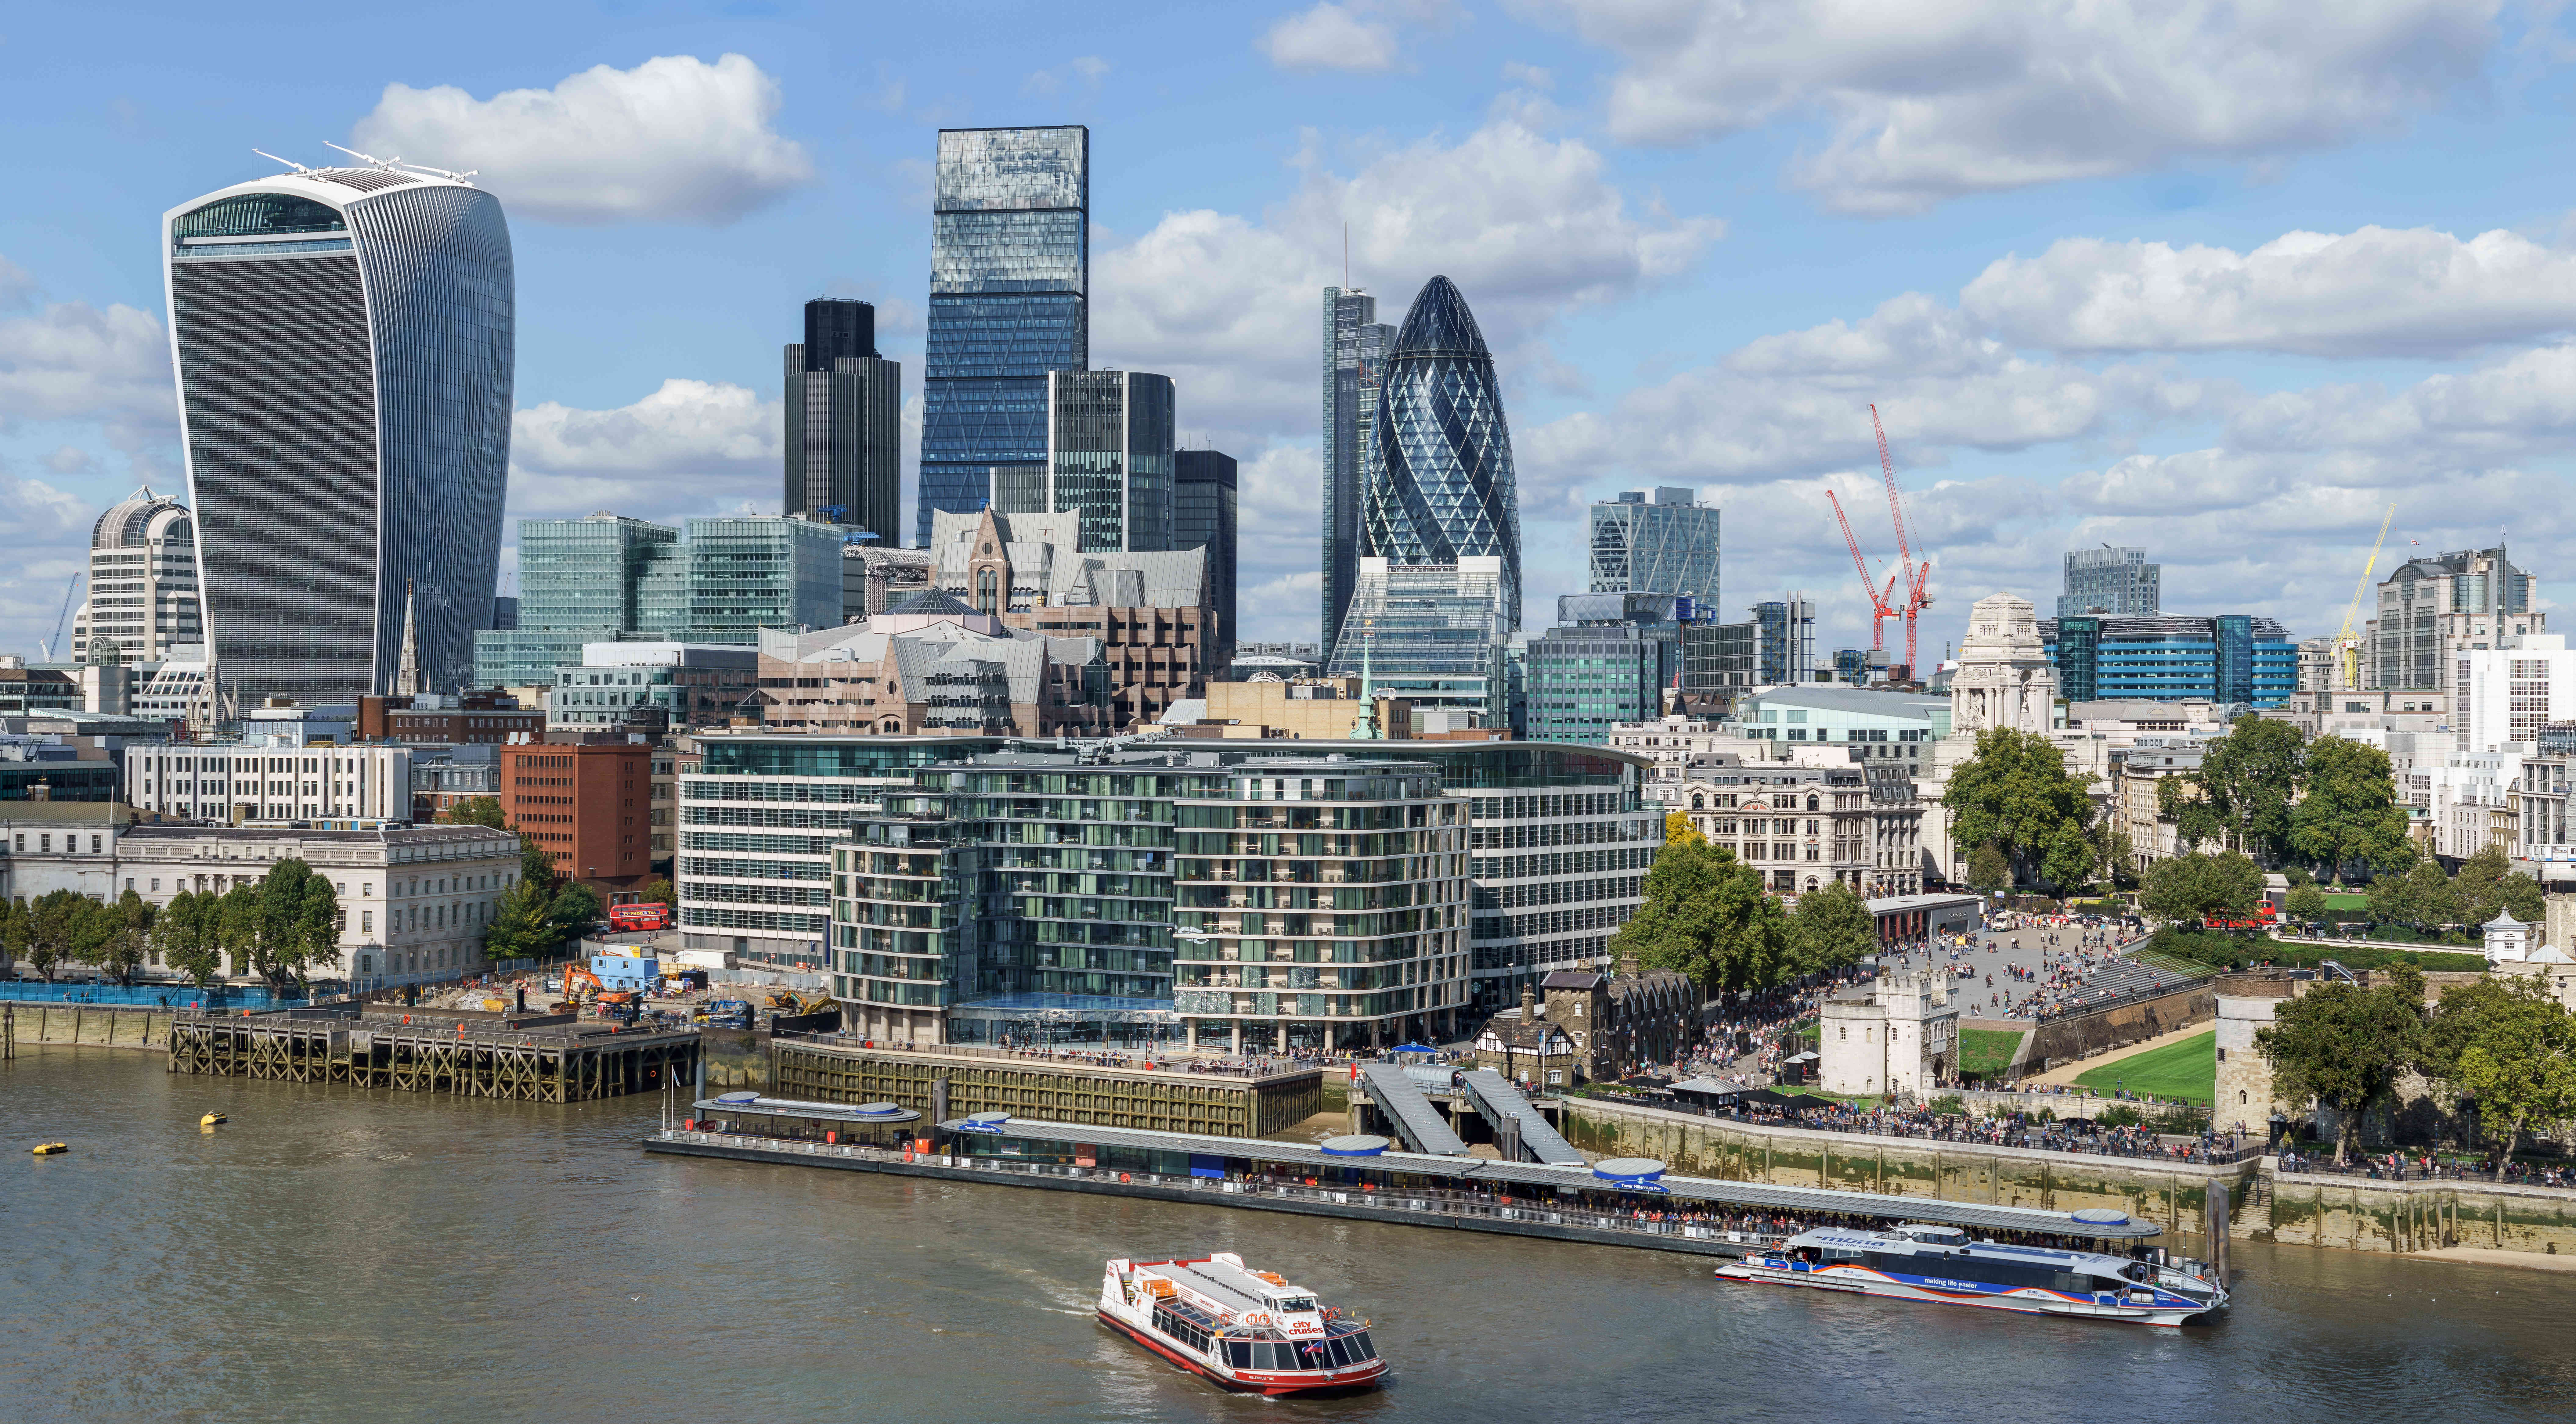 City_of_London_skyline_from_London_City_Hall_-_Sept_2015_-_Crop_Aligned.jpg